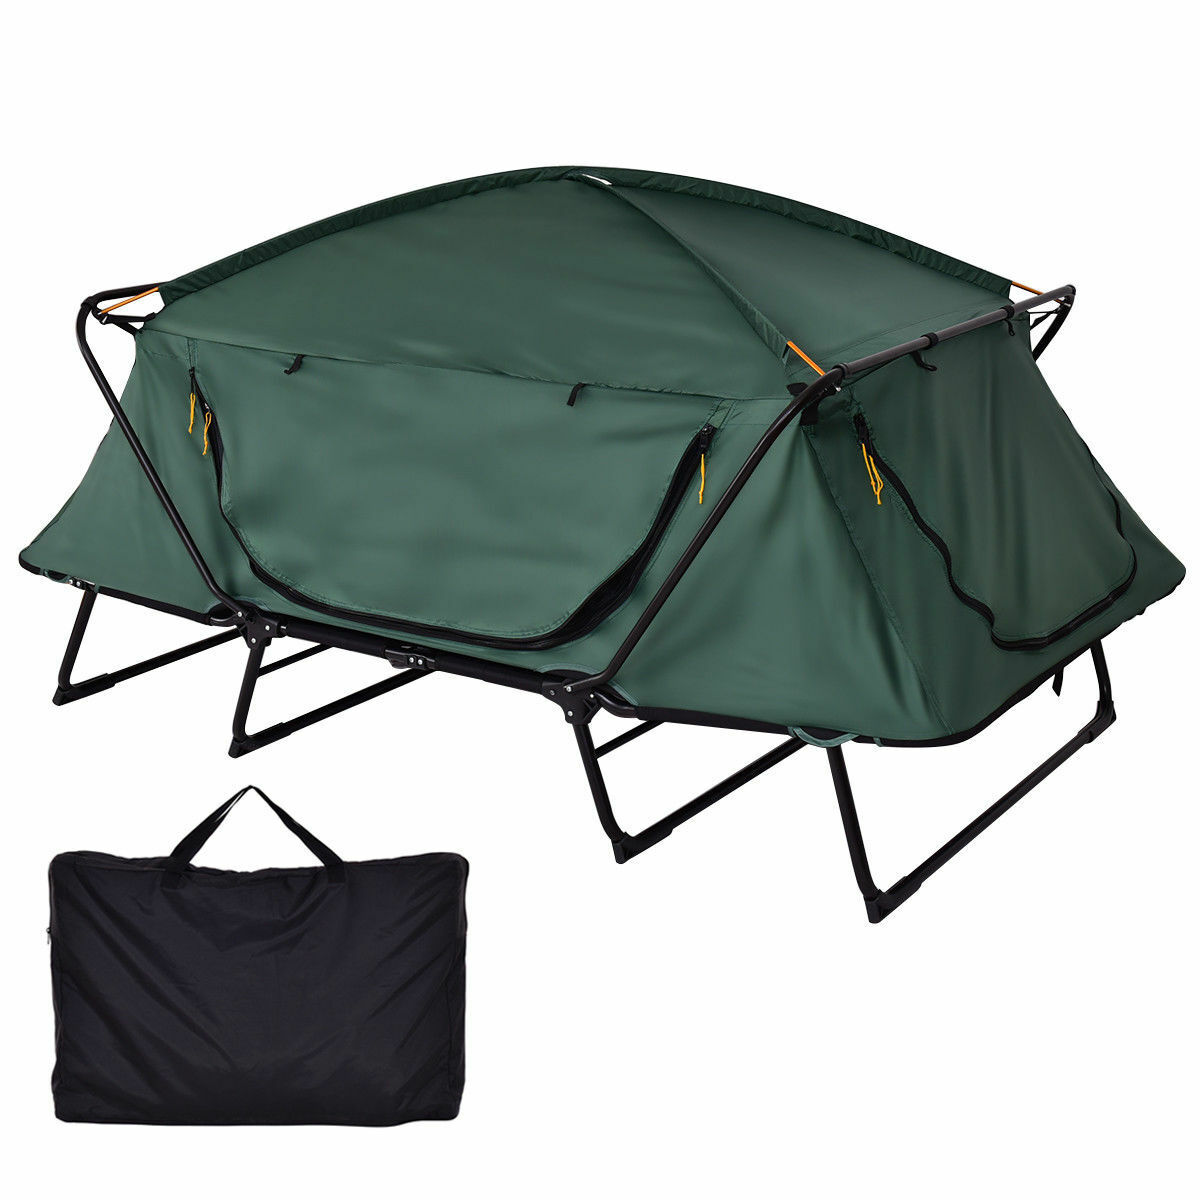 2 Person Elevated Raised Camping Tent Cot Bed Waterproof Hiking Folding Green